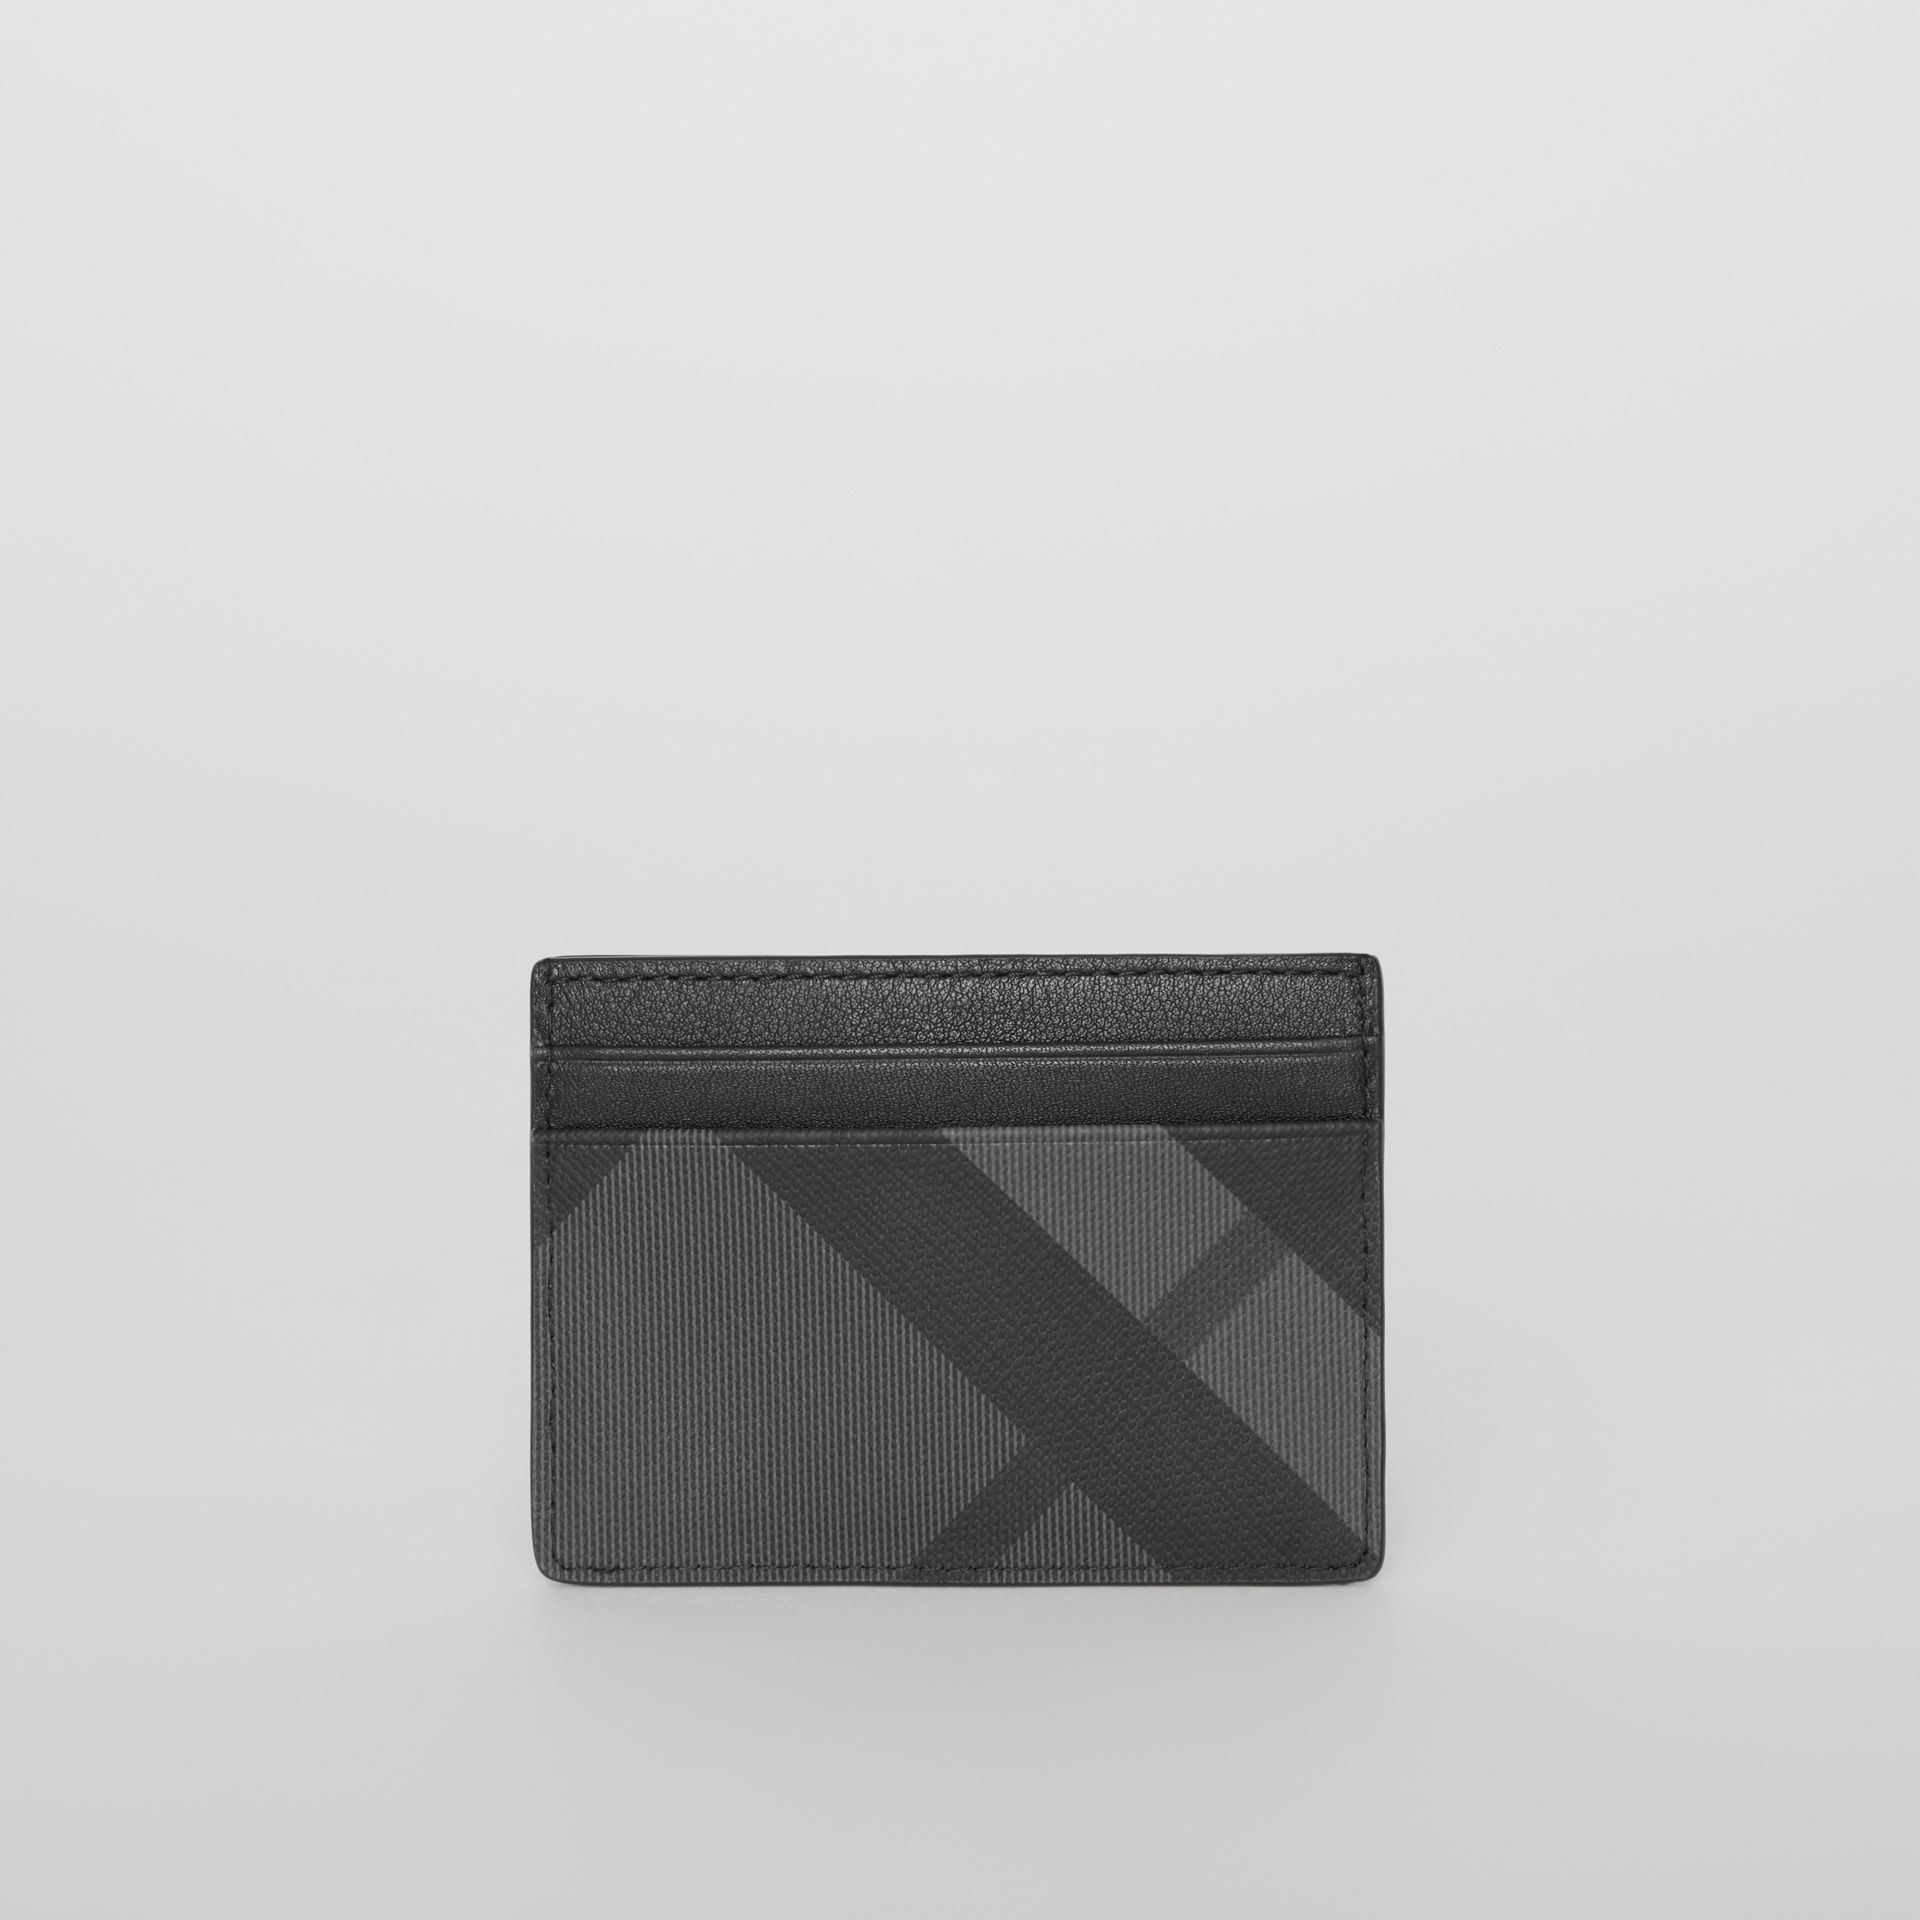 EKD London Check and Leather Card Case in Charcoal/black - Men | Burberry - gallery image 4